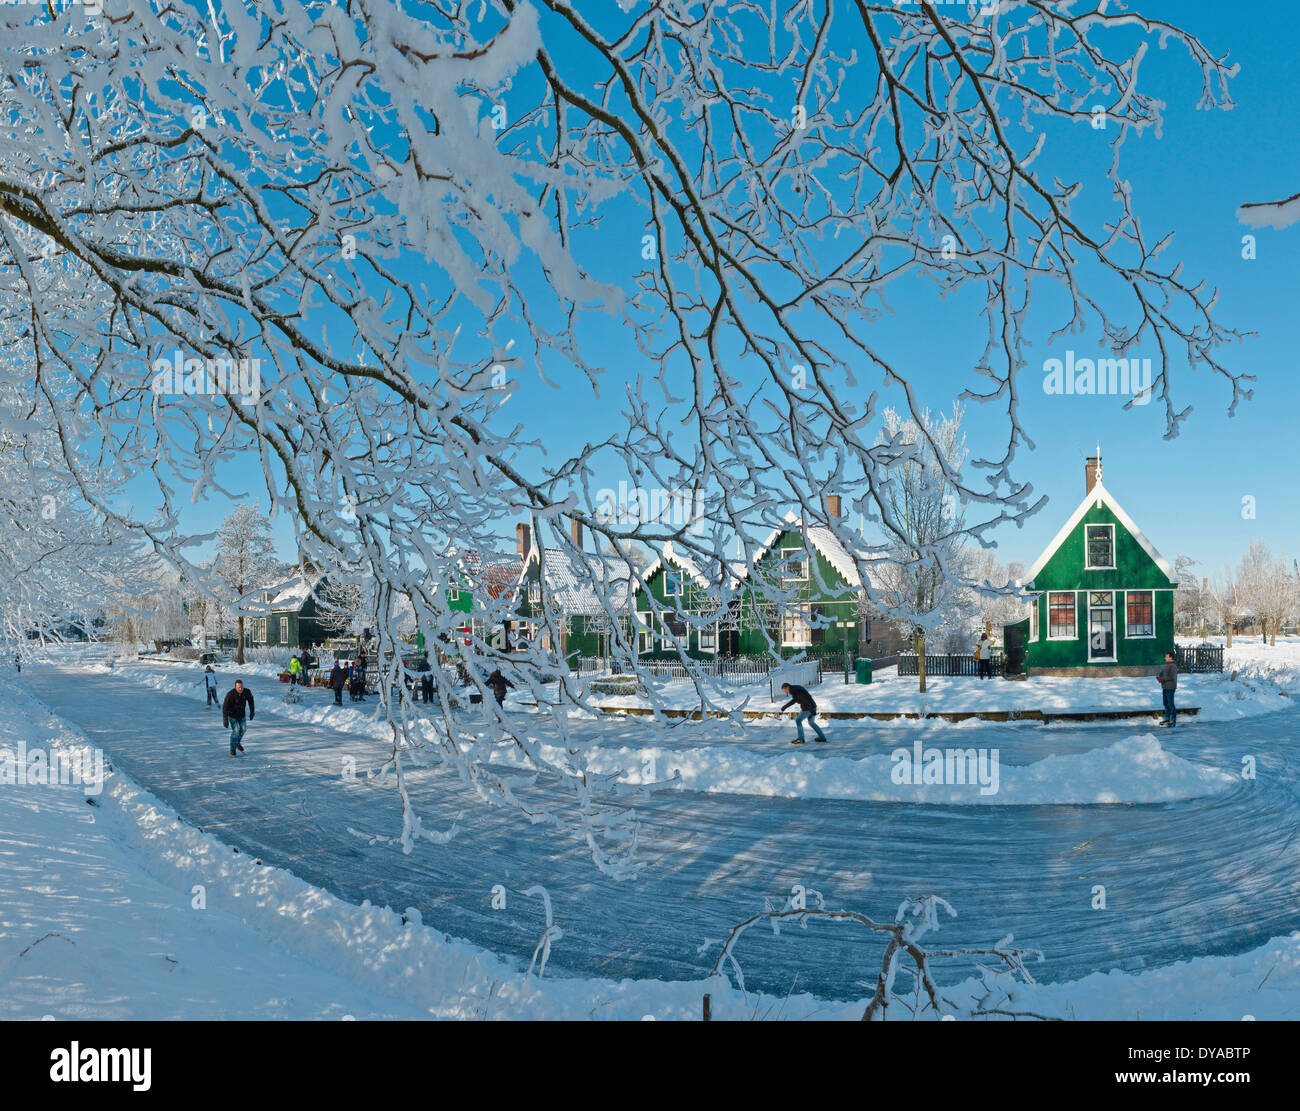 Netherlands Holland Europe Zaandam North Holland city village forest wood trees winter snow ice people frost scating skate - Stock Image